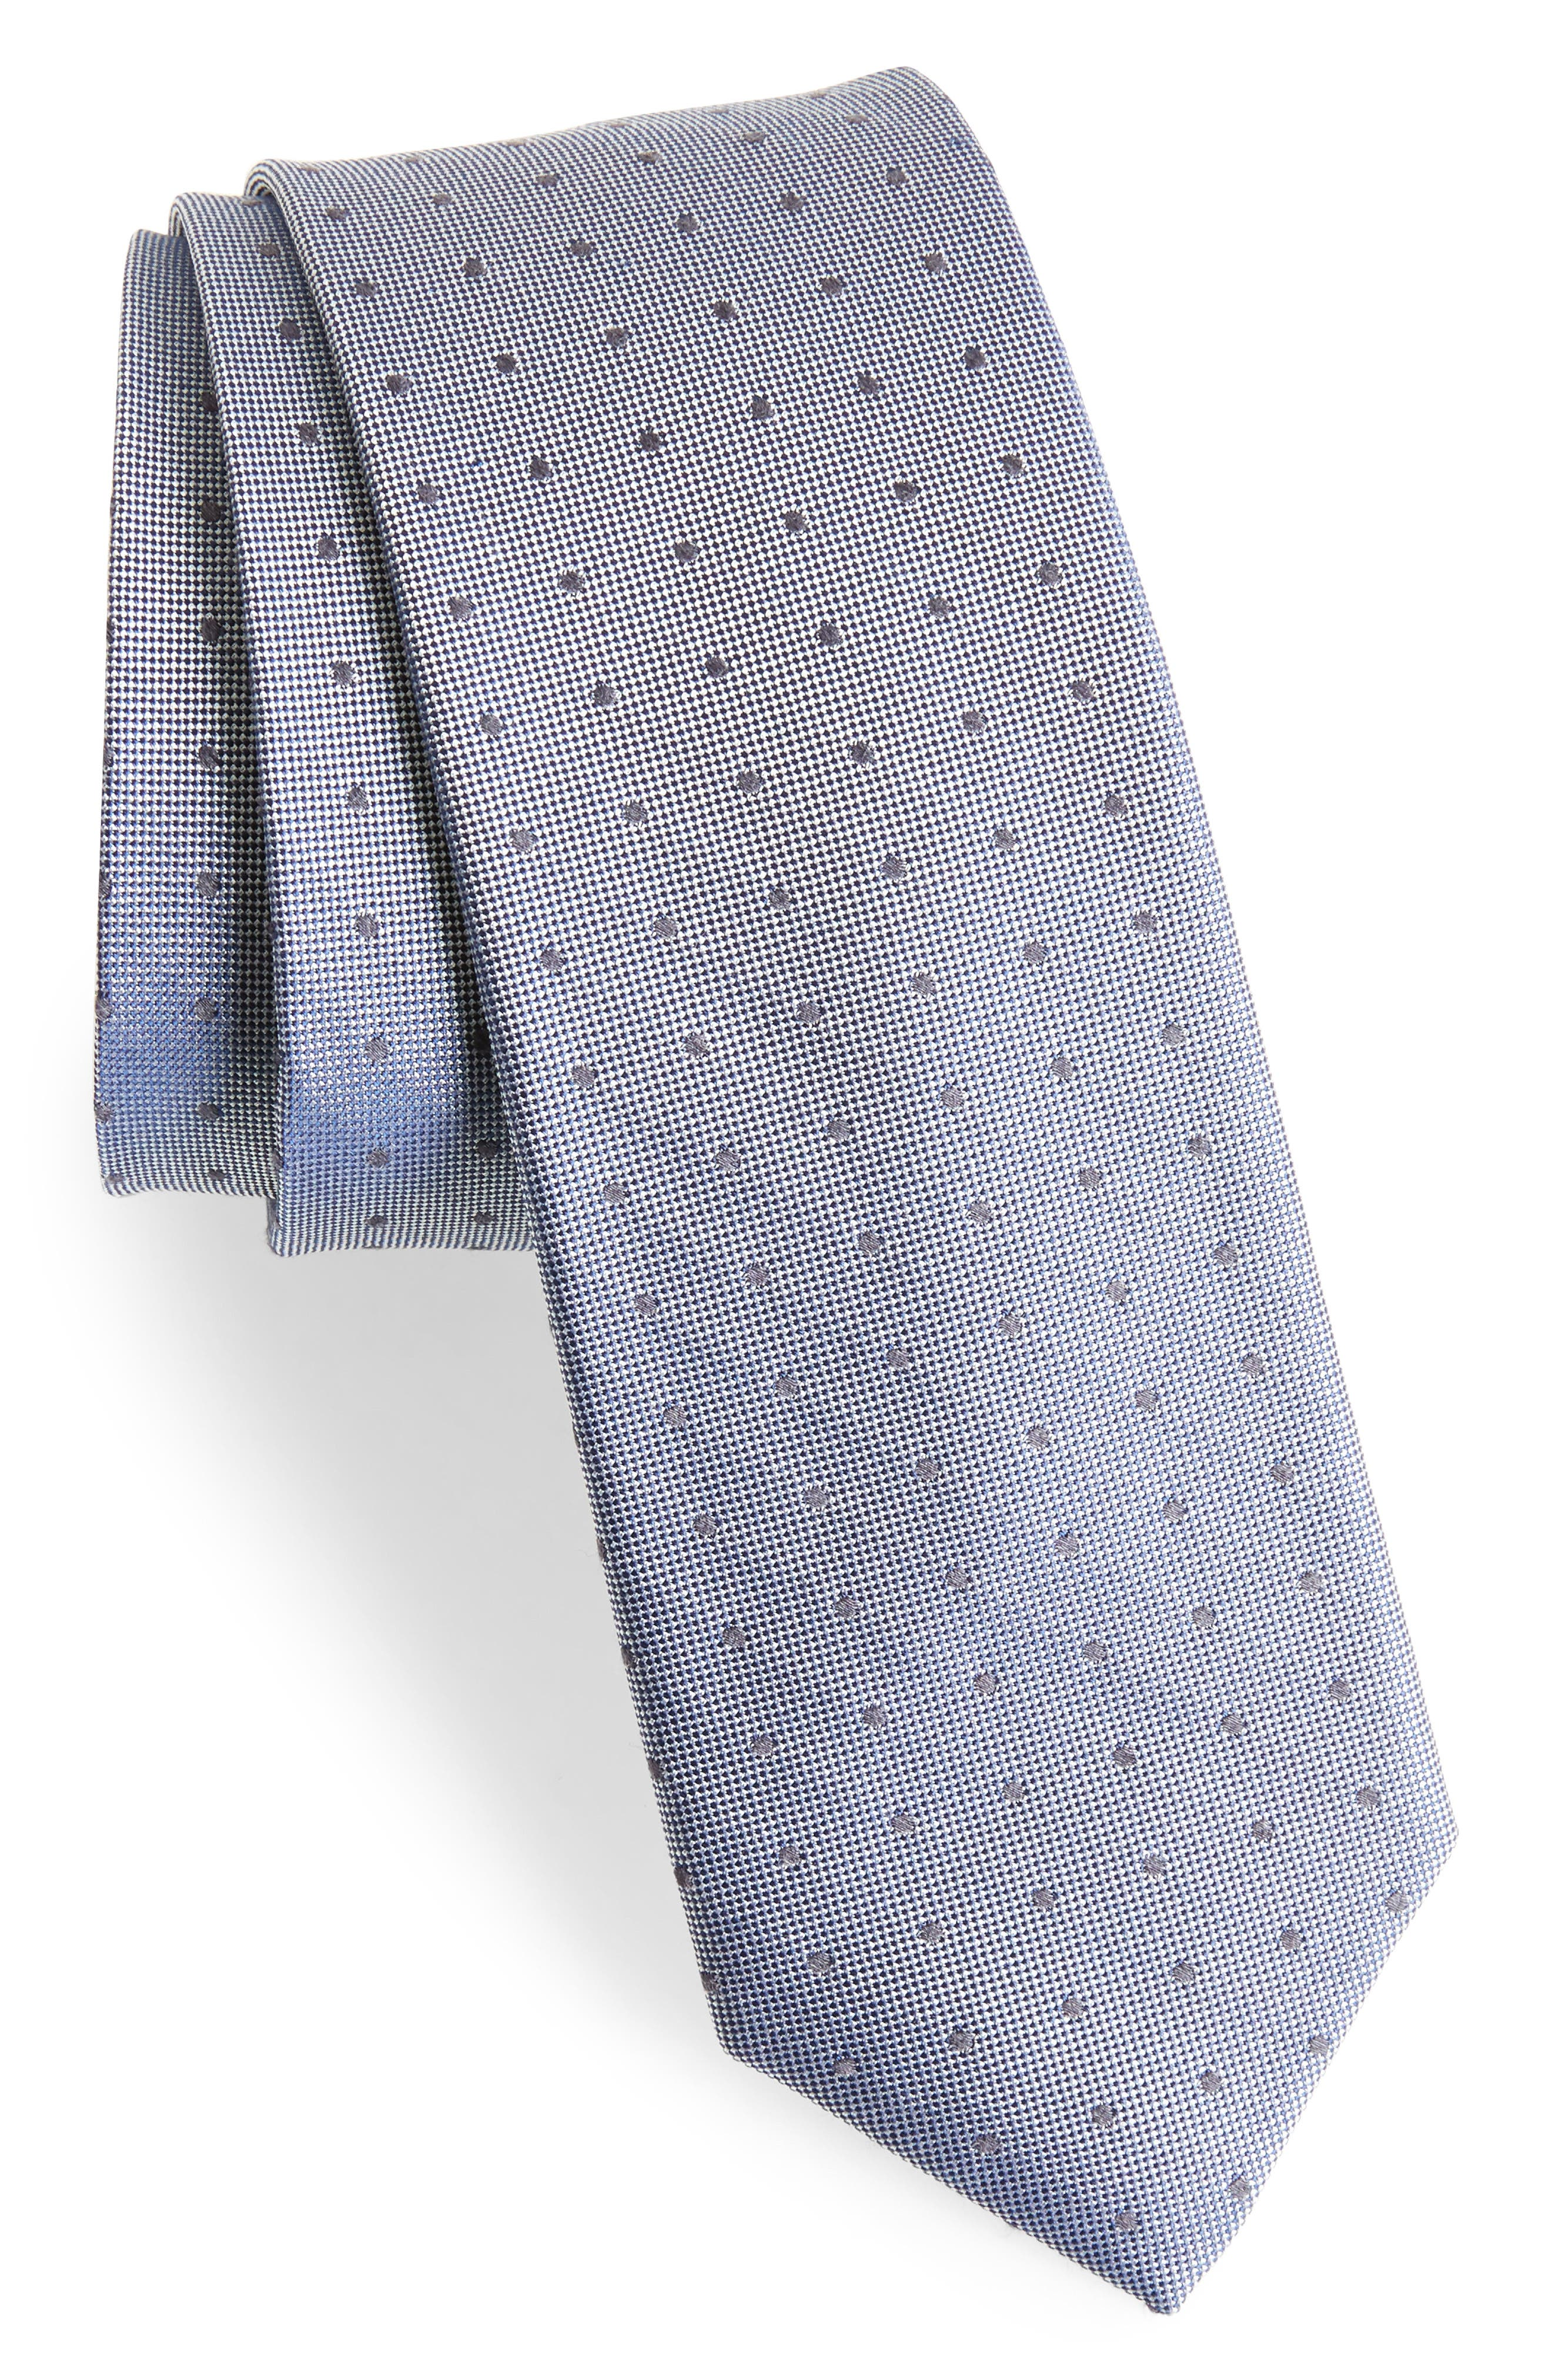 Dot Silk Blend Skinny Tie,                             Main thumbnail 1, color,                             001